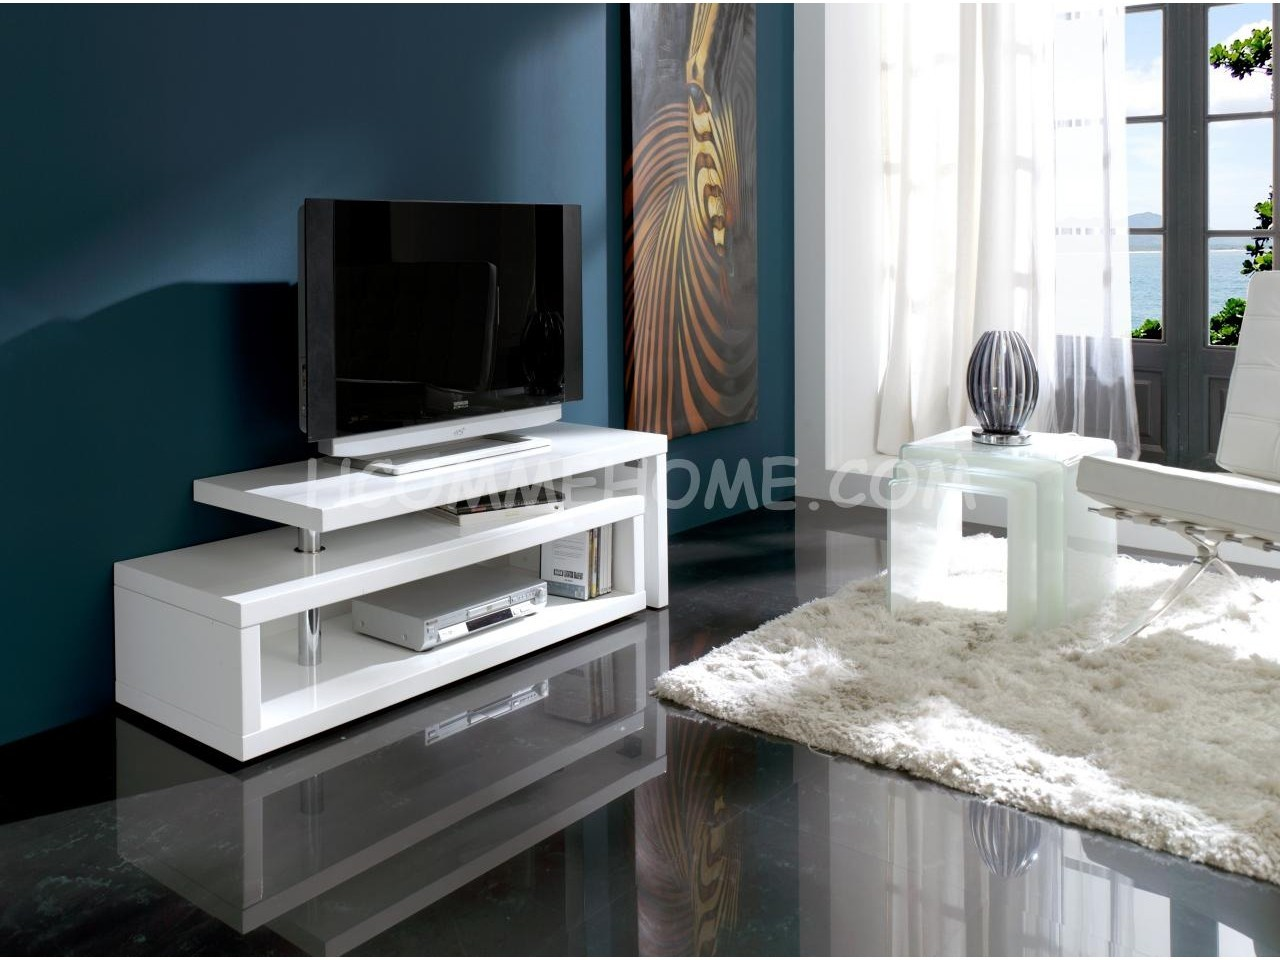 Meuble Tv Design Laqu Blanc Extensible Ofelia Meuble Tv Design  # Meuble Tv Vitree